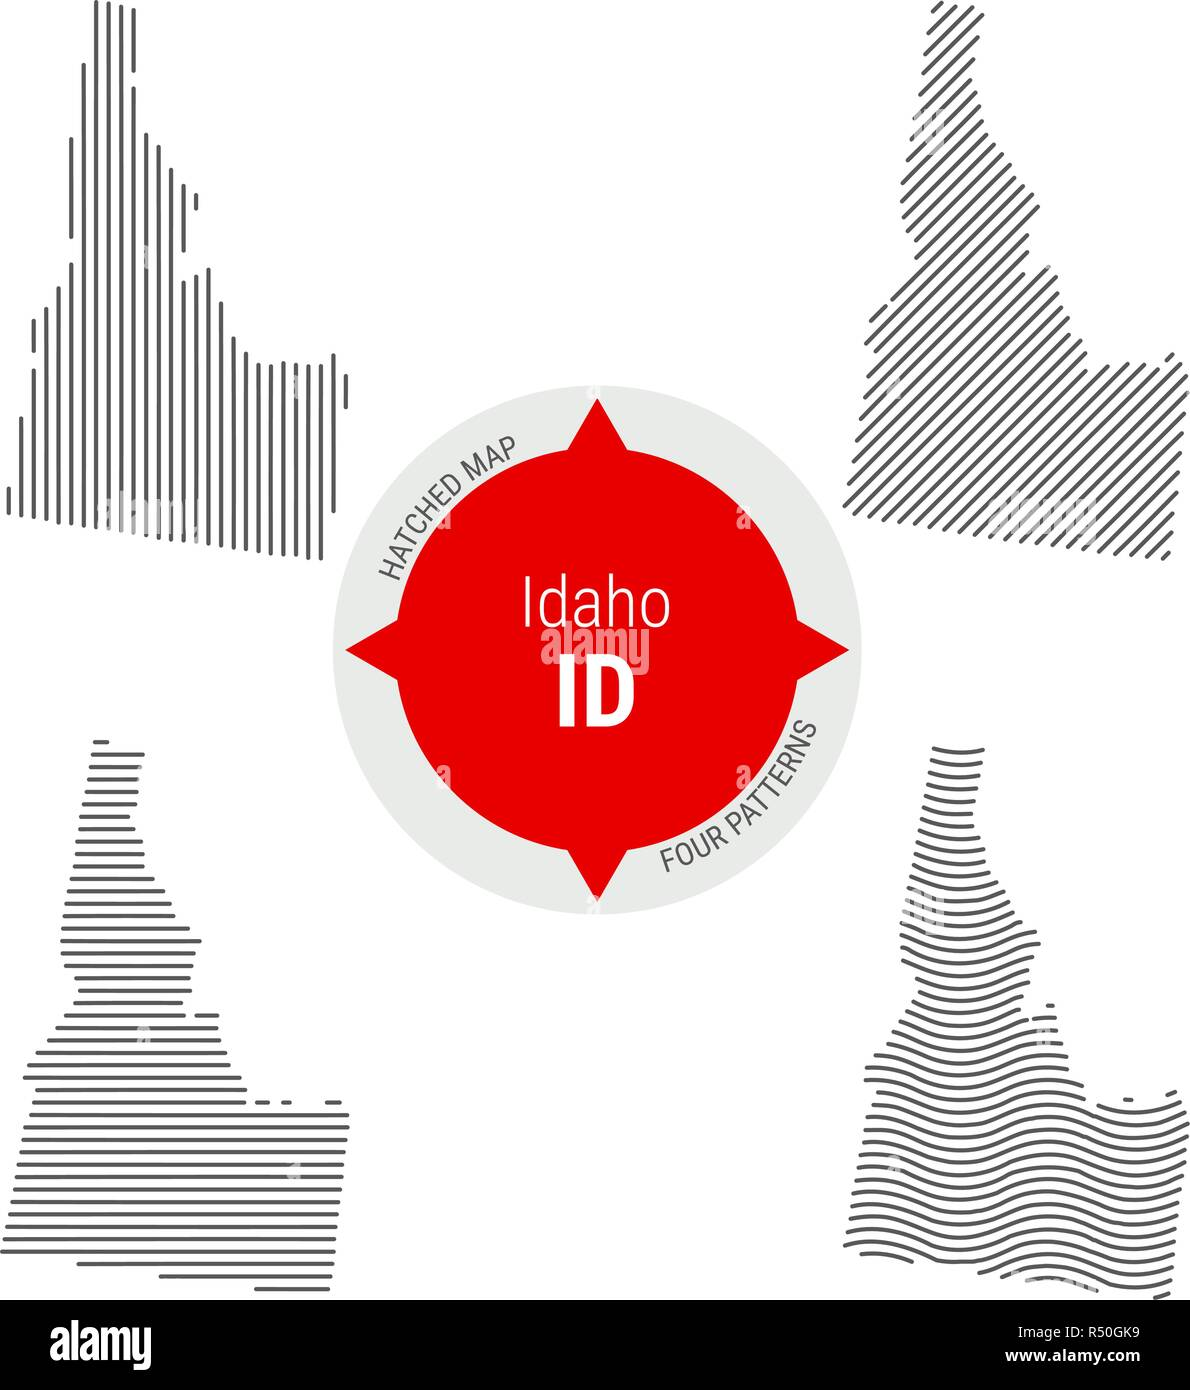 Hatched Pattern Vector Map of Idaho. Stylized Simple Silhouette of Idaho. Four Different Patterns - Stock Vector